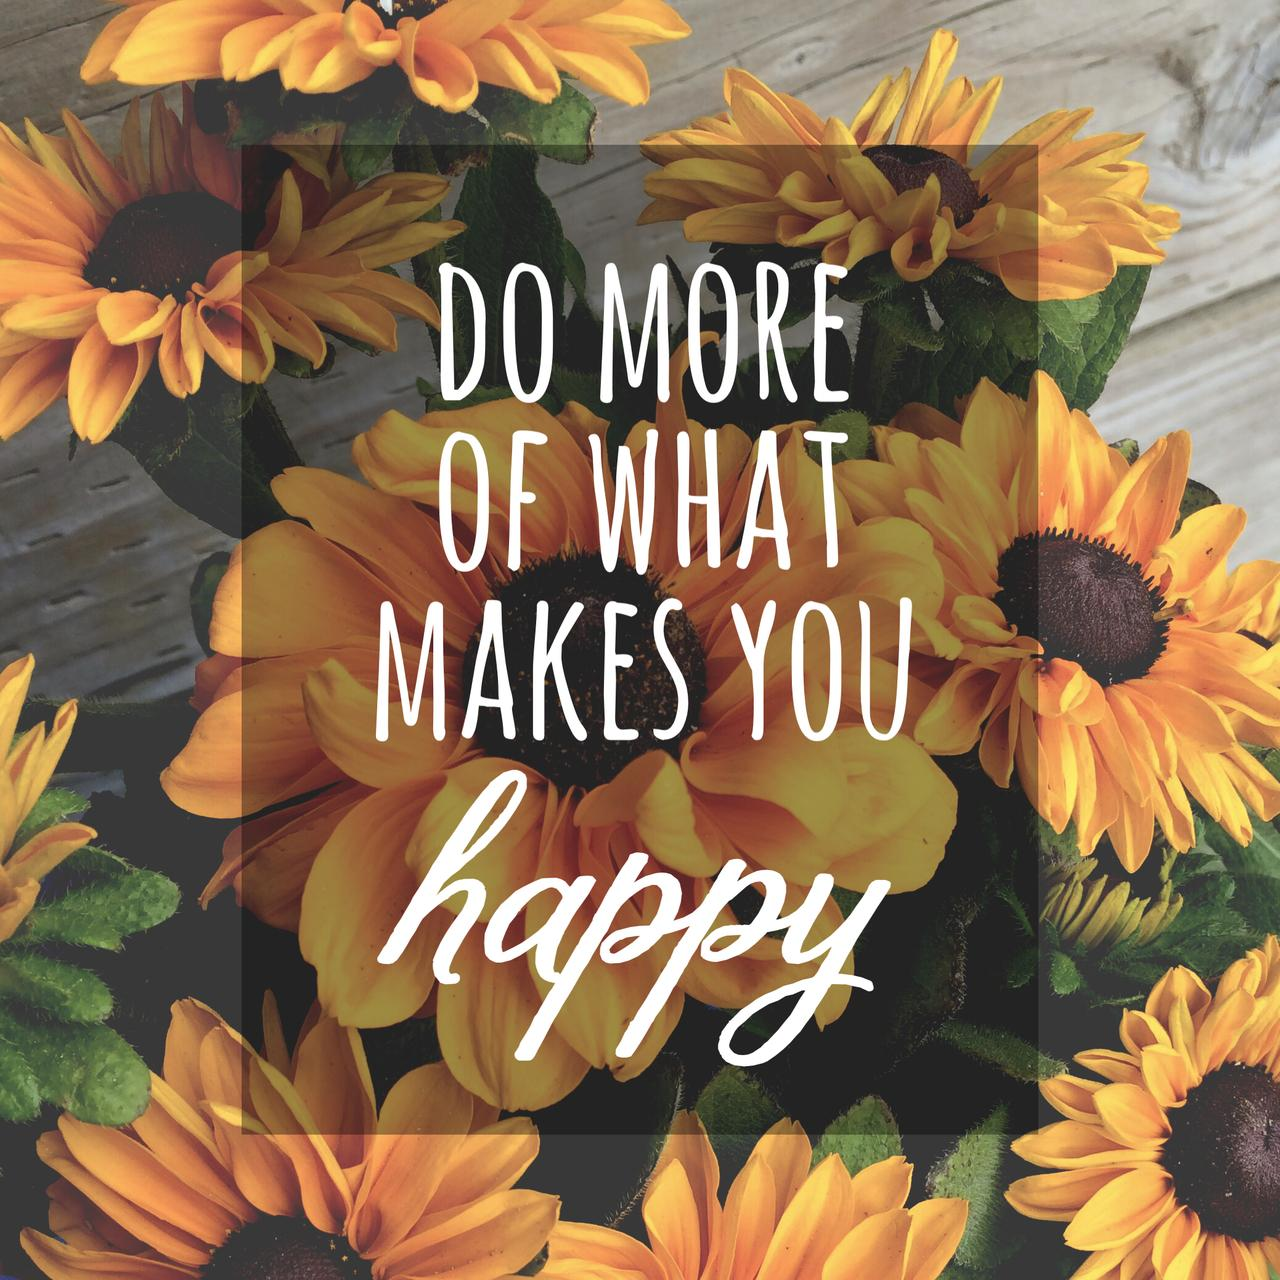 188 1885130 sunflower wallpaper tumblr quotes with floral background